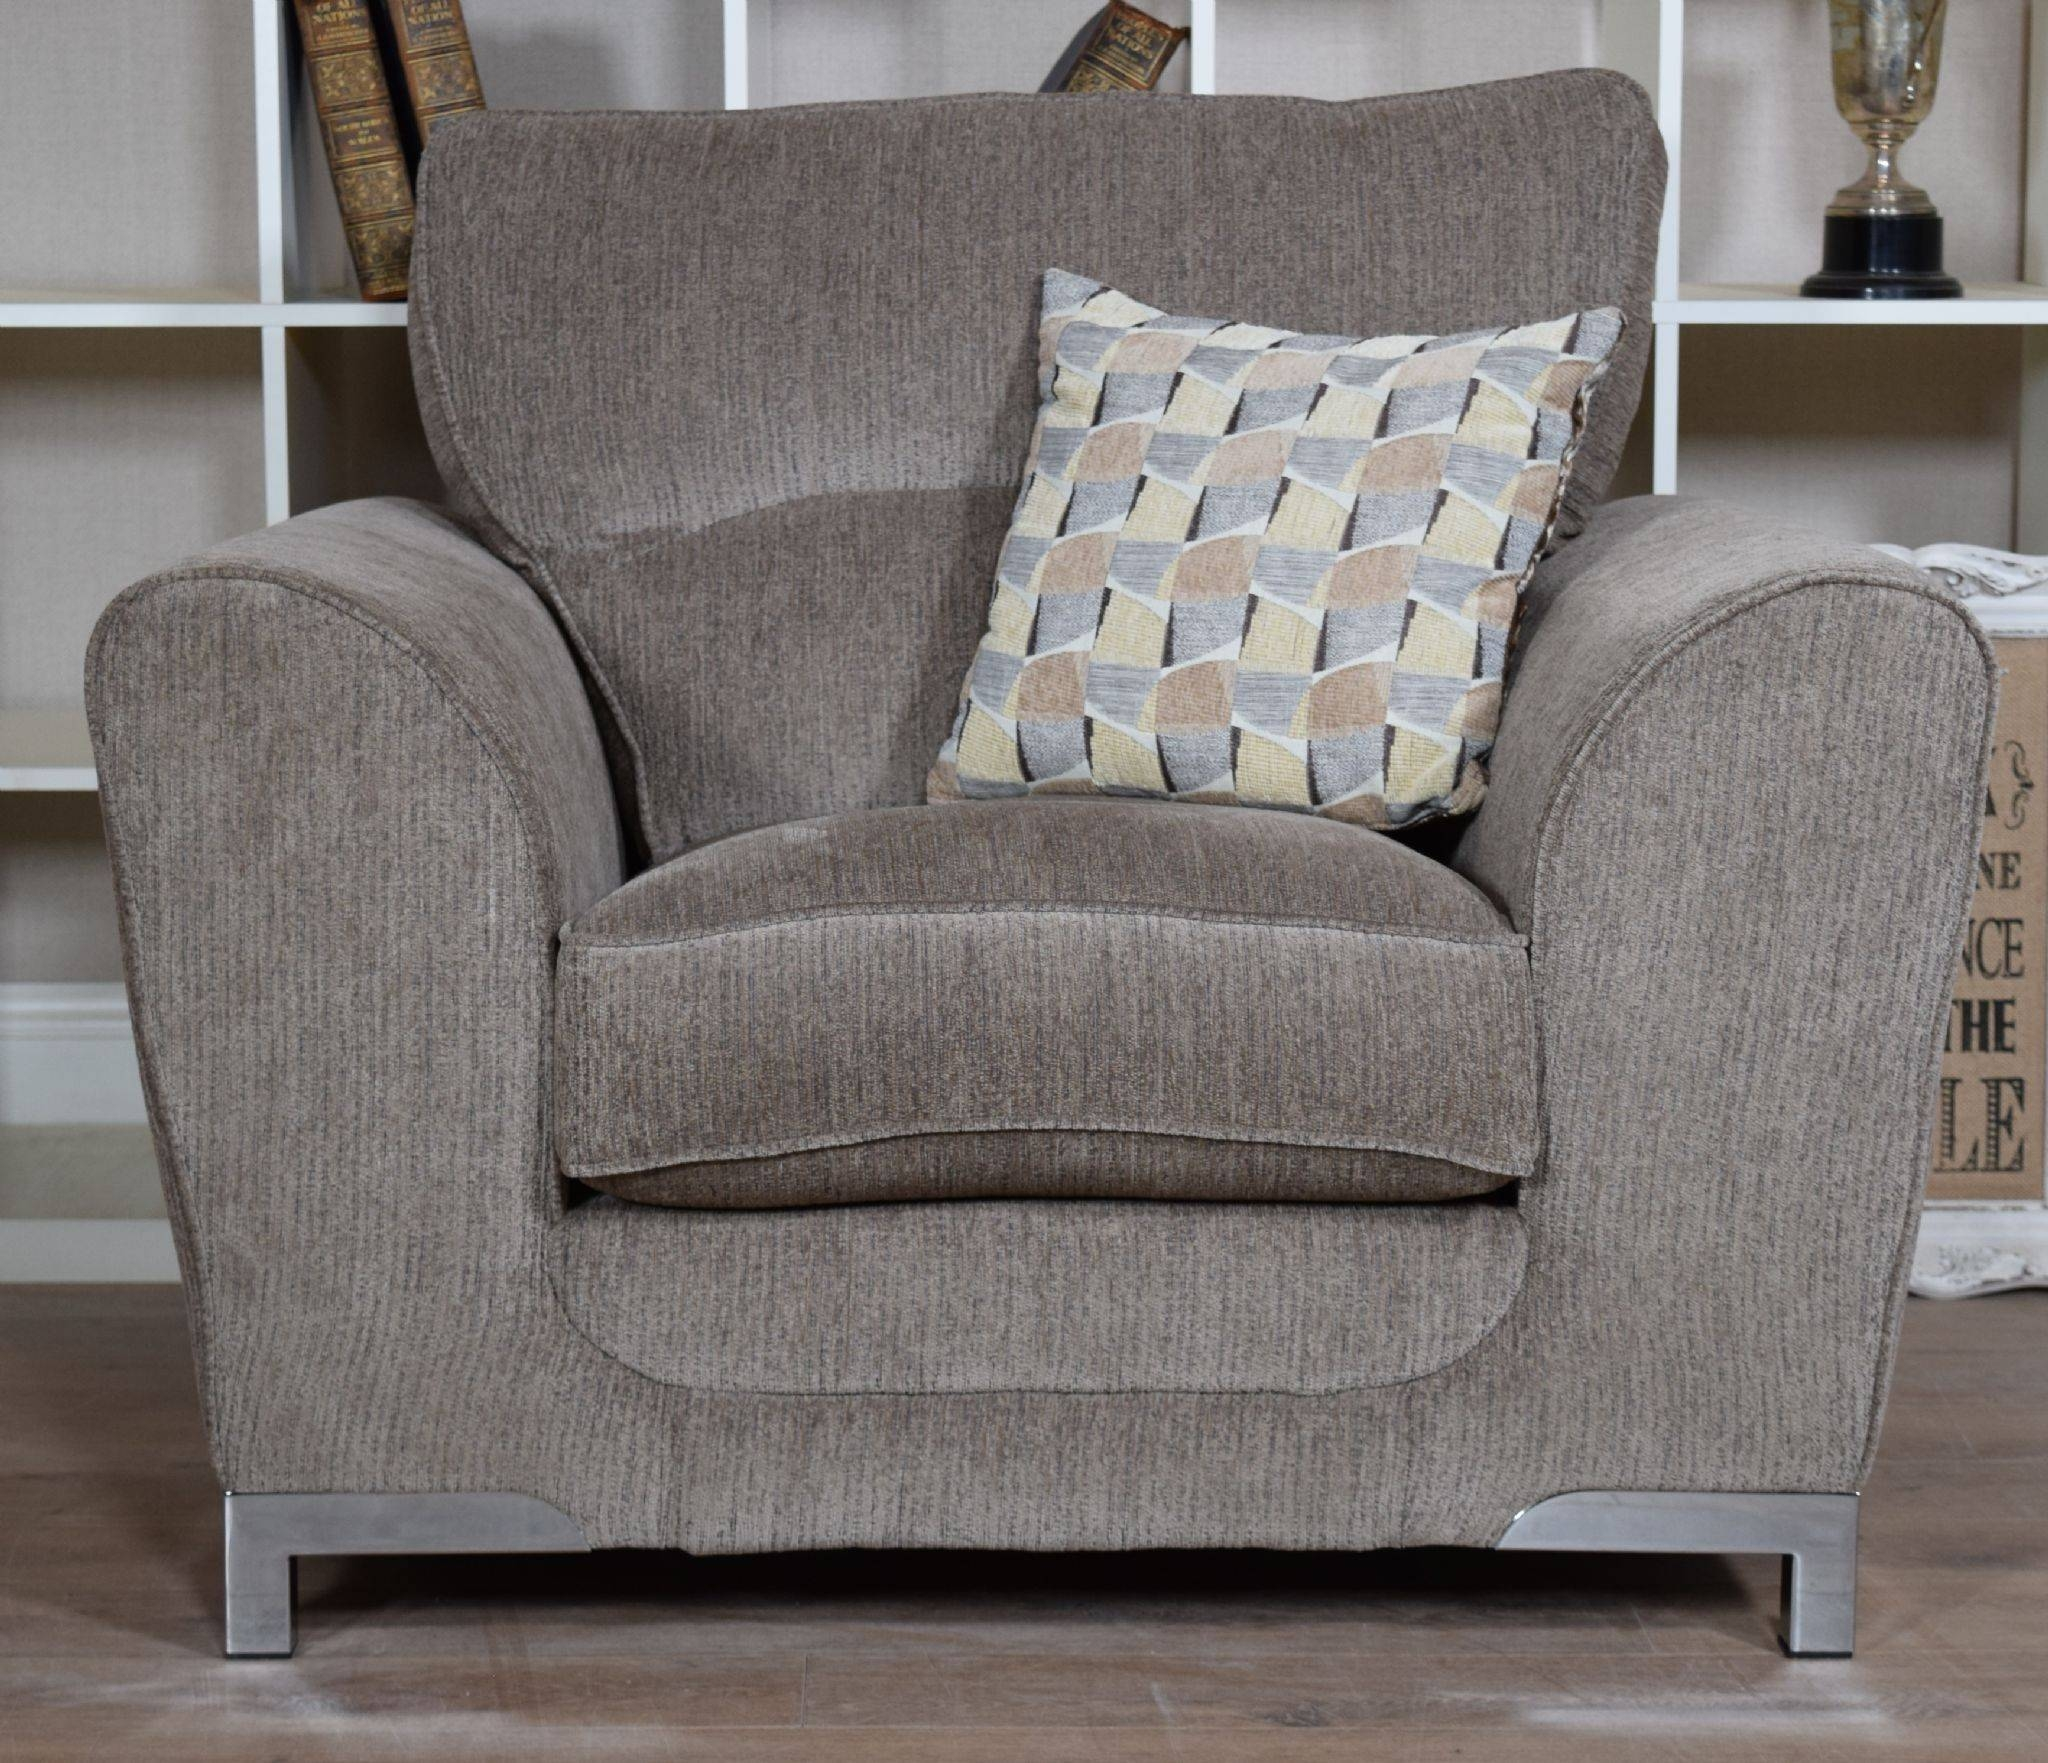 Set Nikki 3 Seater Sofa & Cuddle Chair Suite Set – Mocha Grey Intended For 3 Seater Sofa And Cuddle Chairs (View 11 of 30)